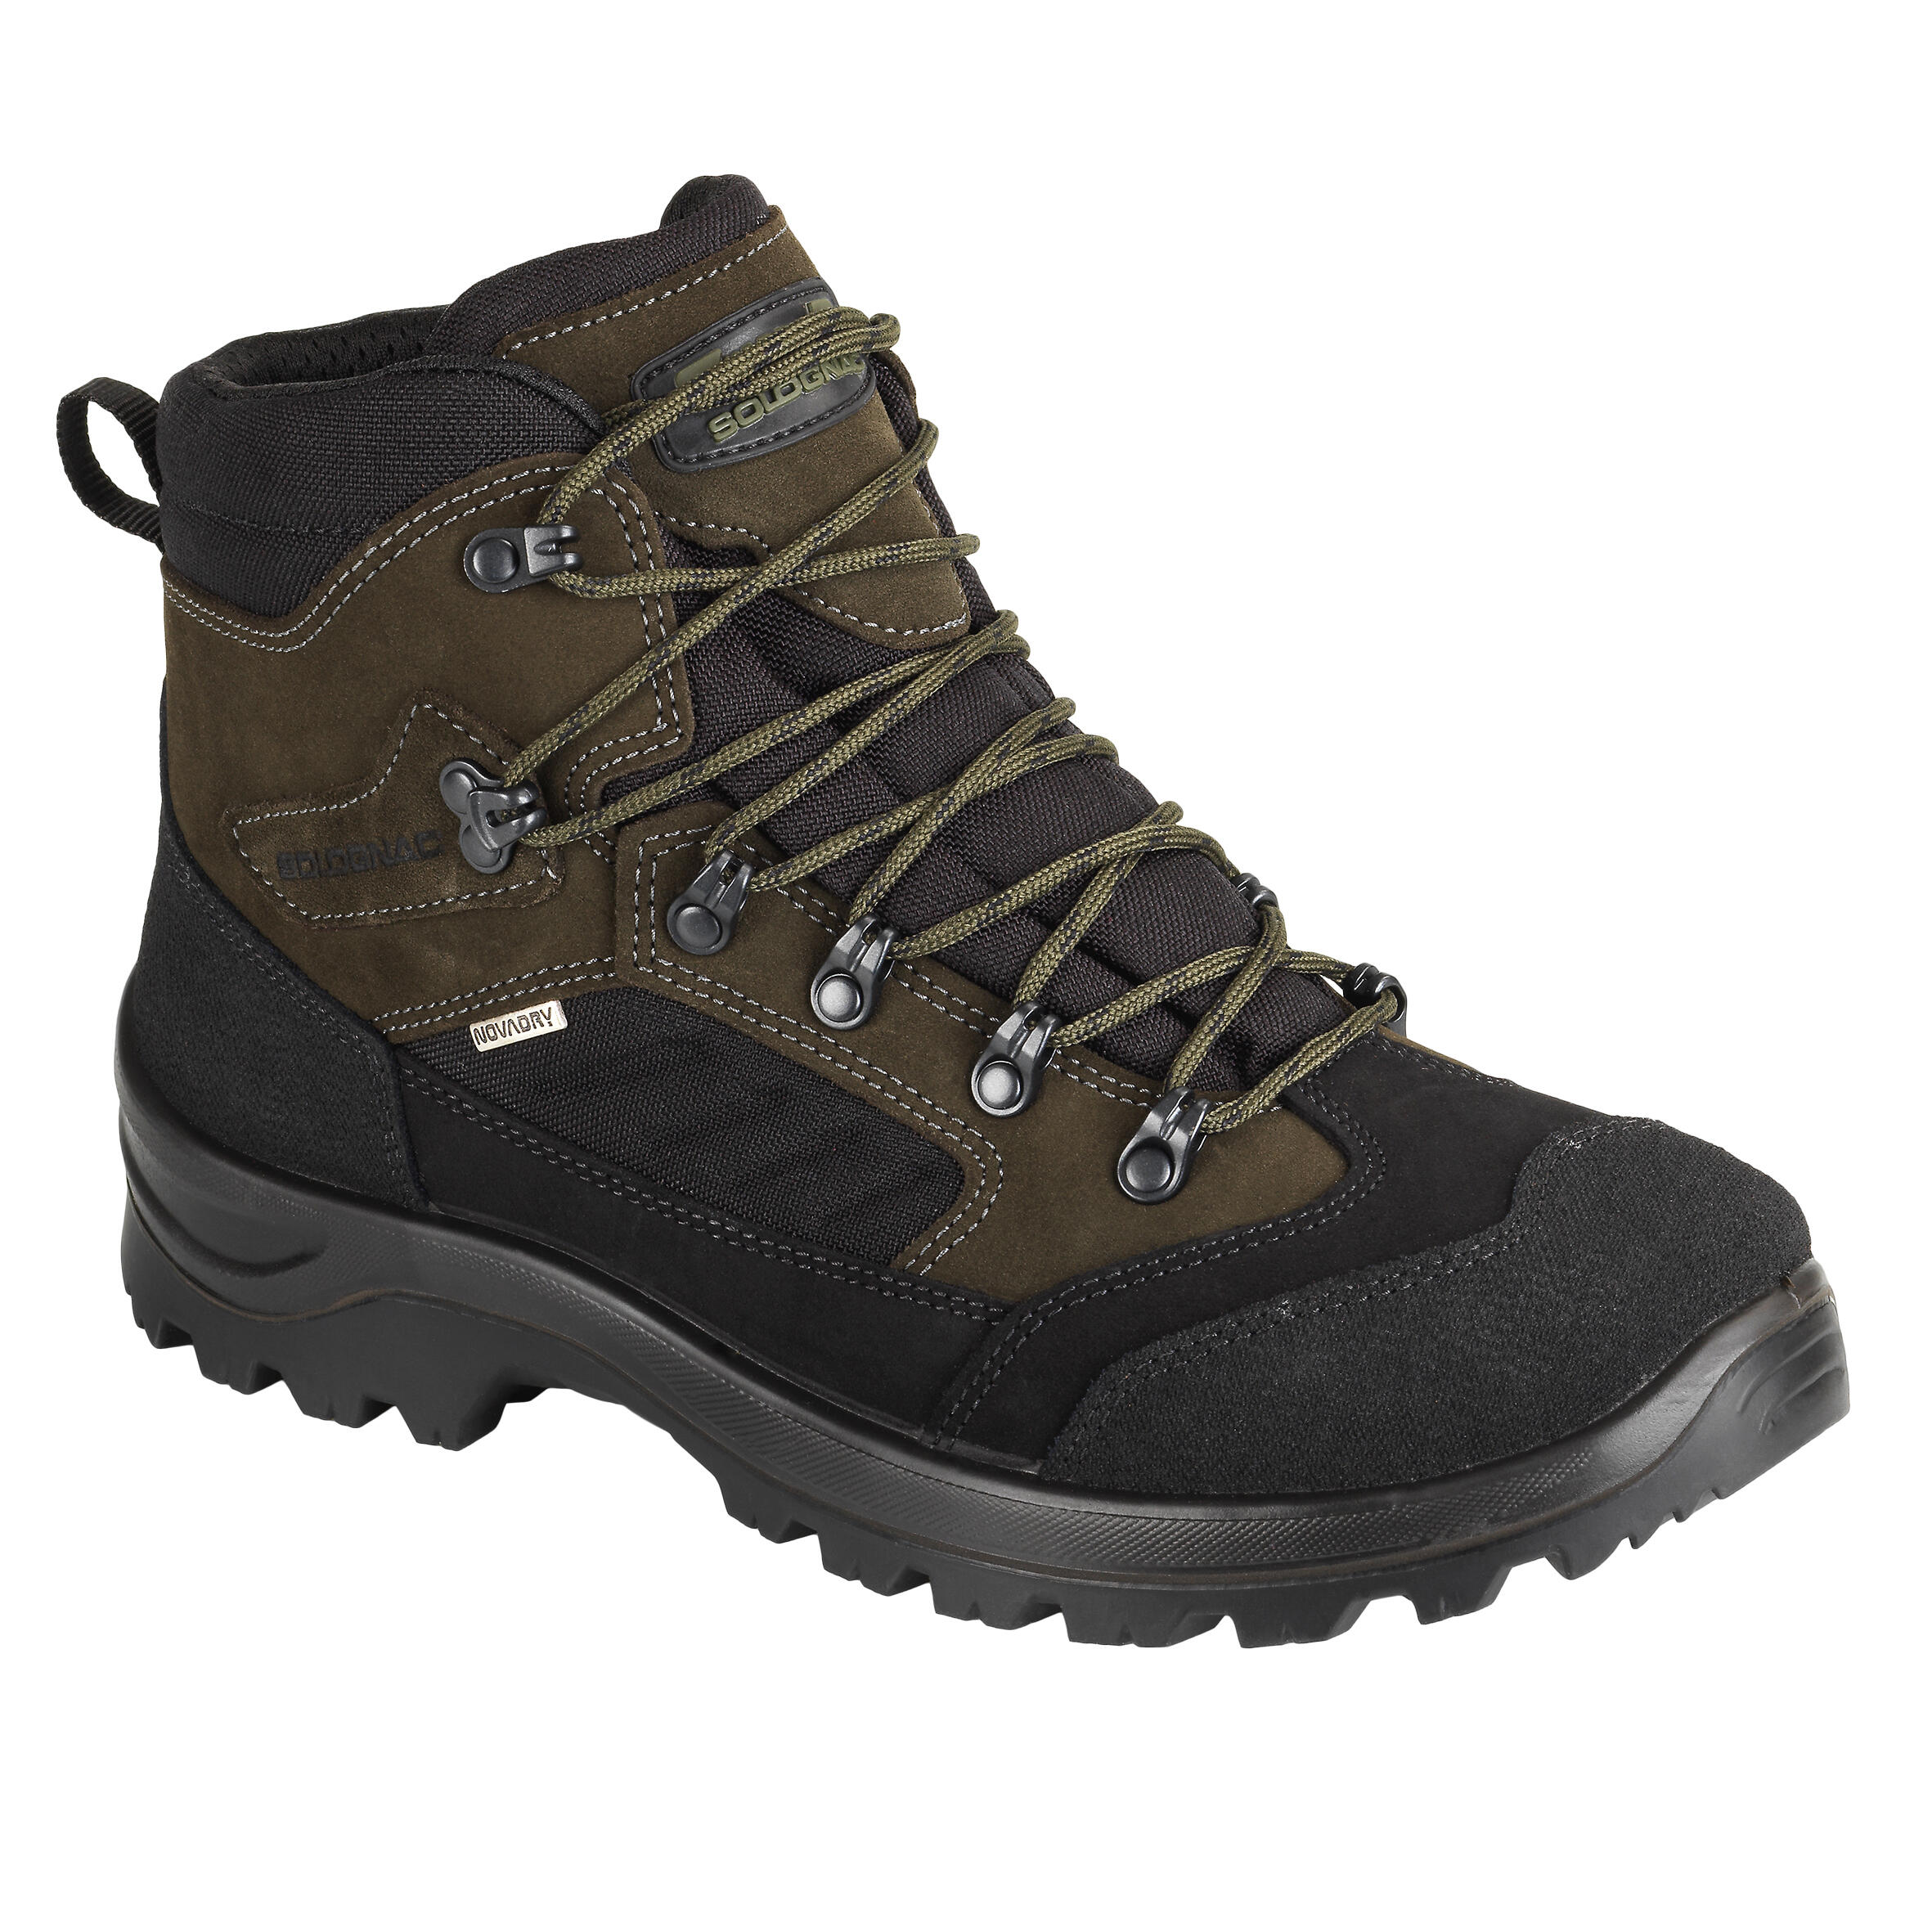 Chasse Chaussure Crosshunt Marron Imperméable 300 eCodxBr